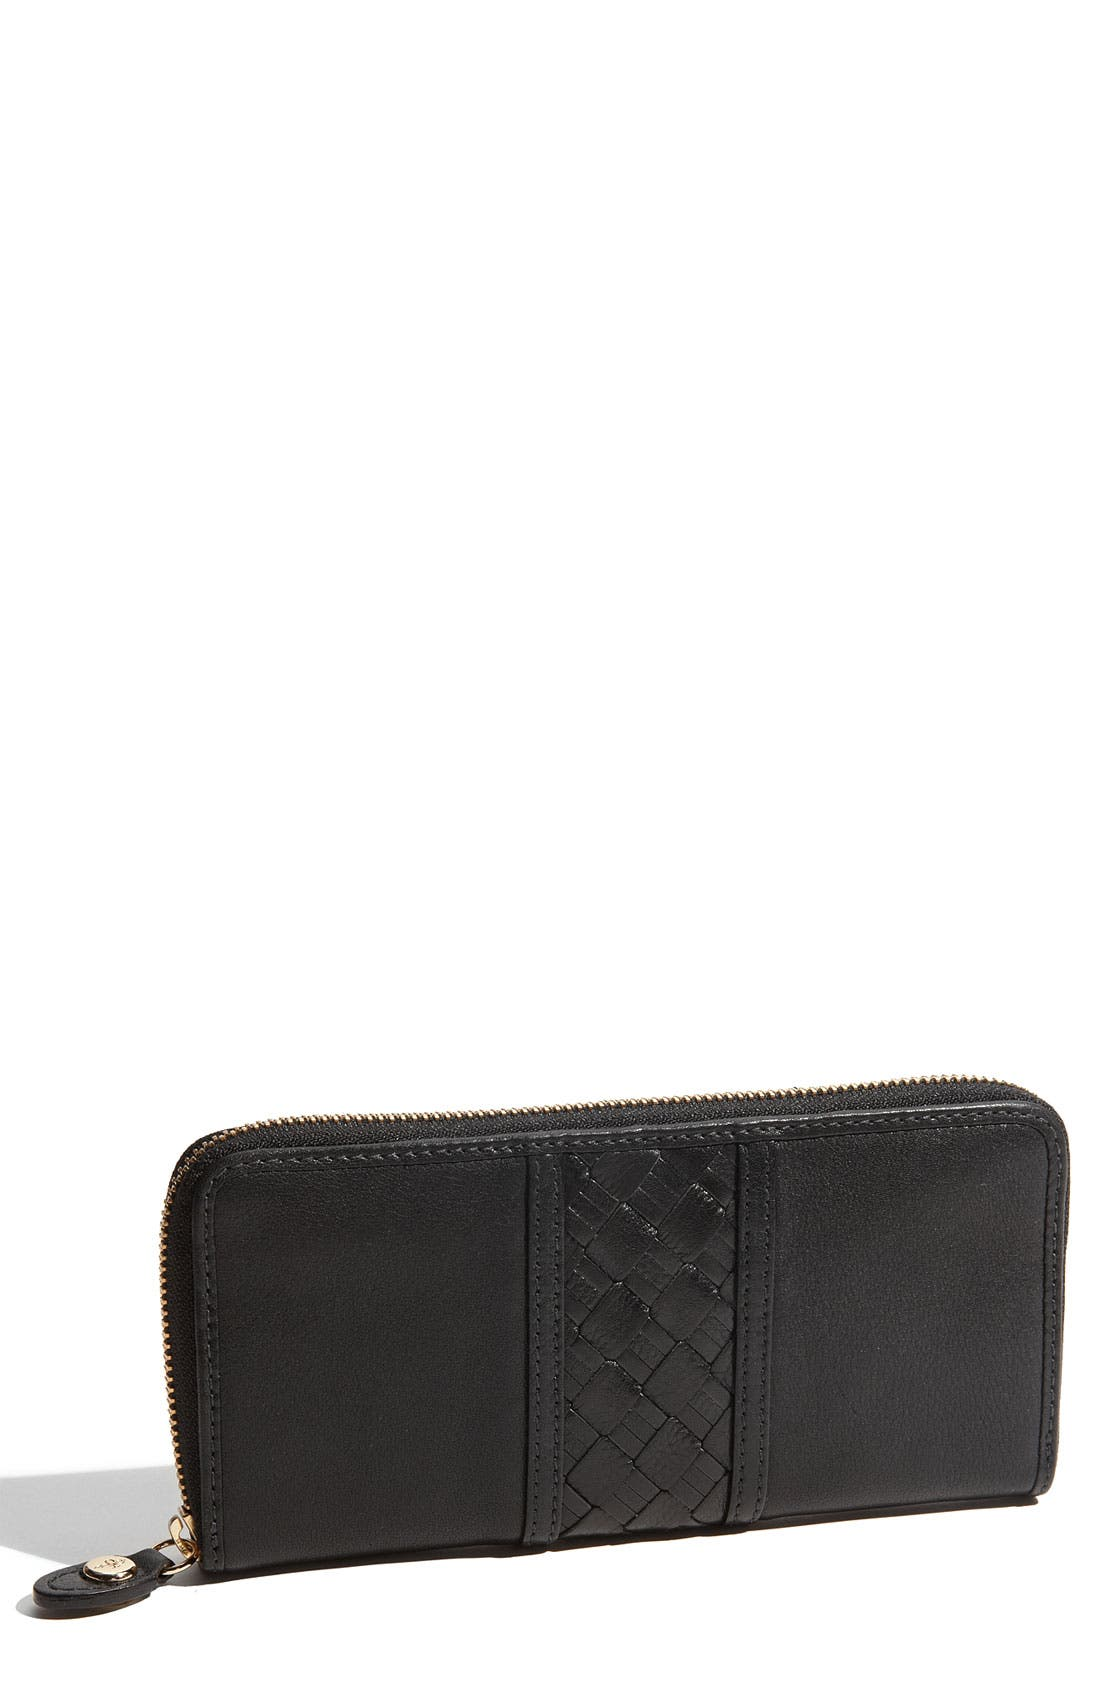 'Weave' Zip Around Travel Wallet,                             Main thumbnail 1, color,                             001